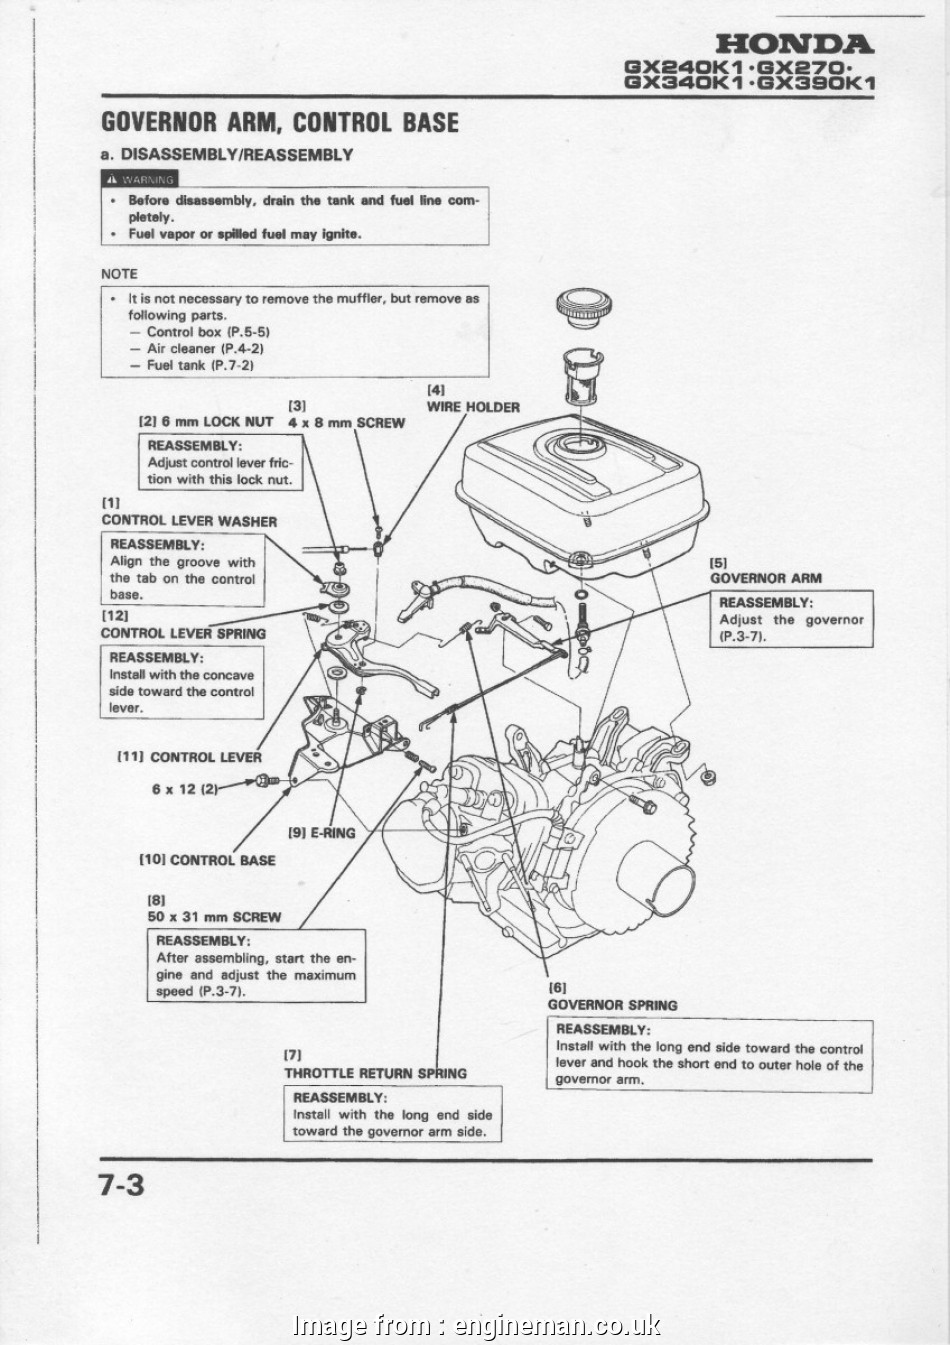 DIAGRAM] Honda Gx240 Wiring Diagram FULL Version HD Quality Wiring Diagram  - FEPHASEDIAGRAM.HUNGKUEN.IThungkuen.it